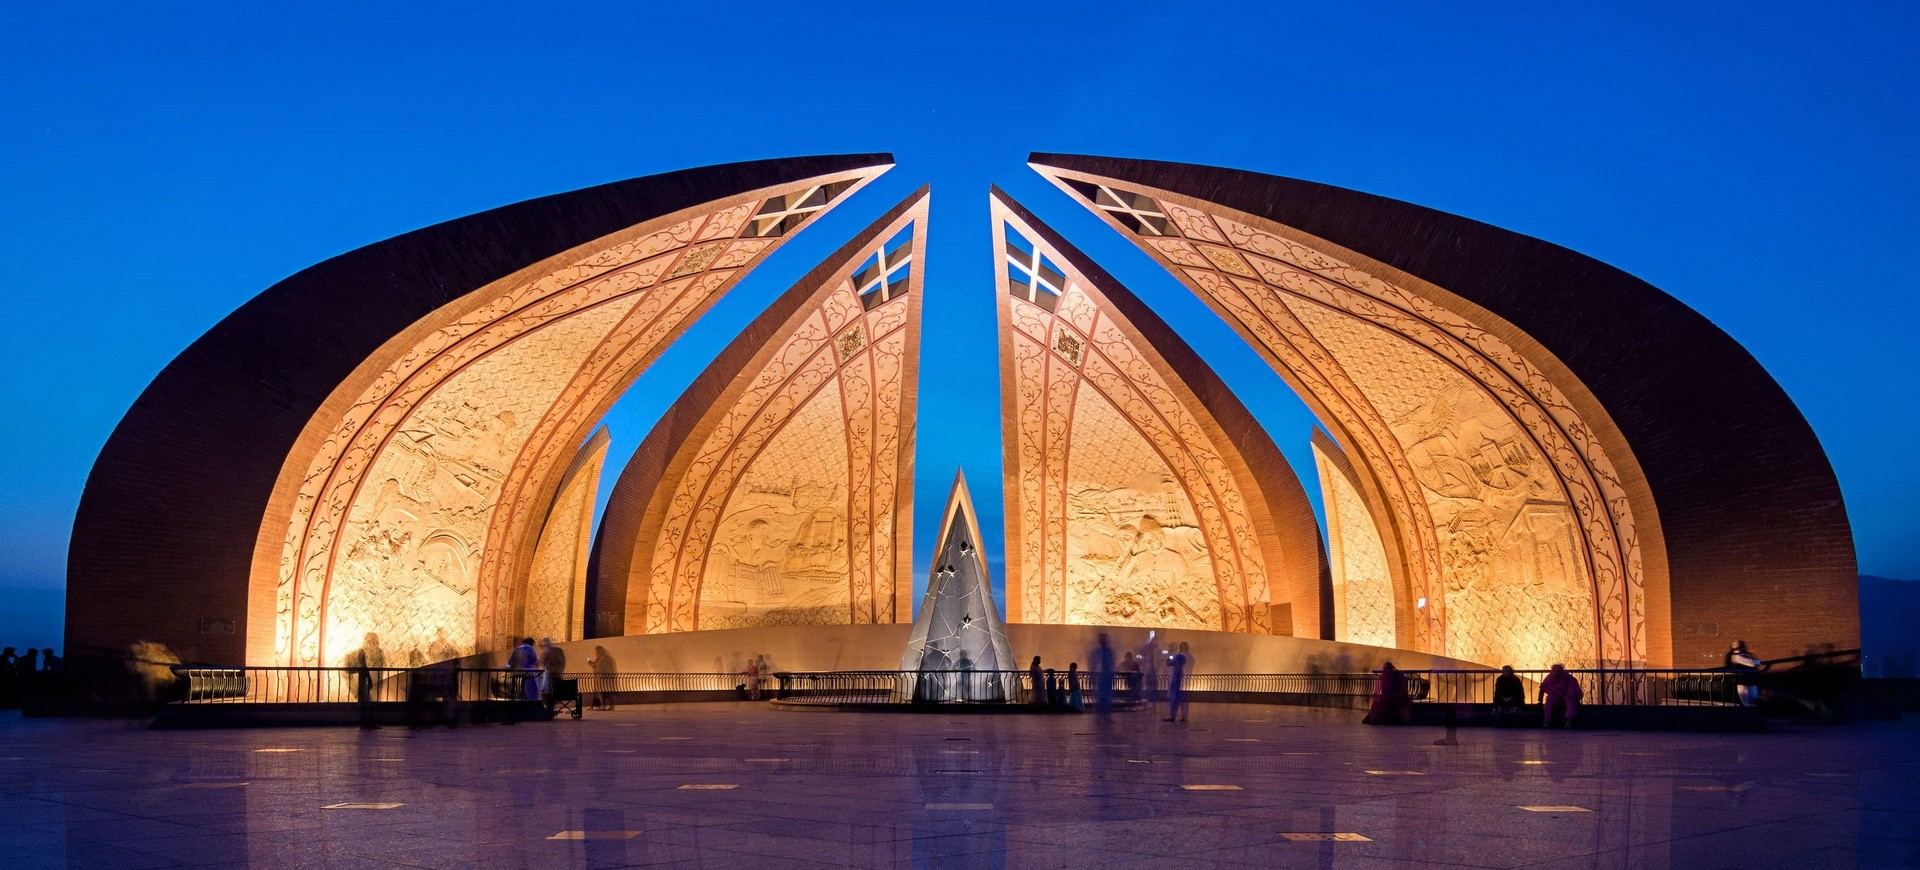 Pakistan Monument à Islamabad